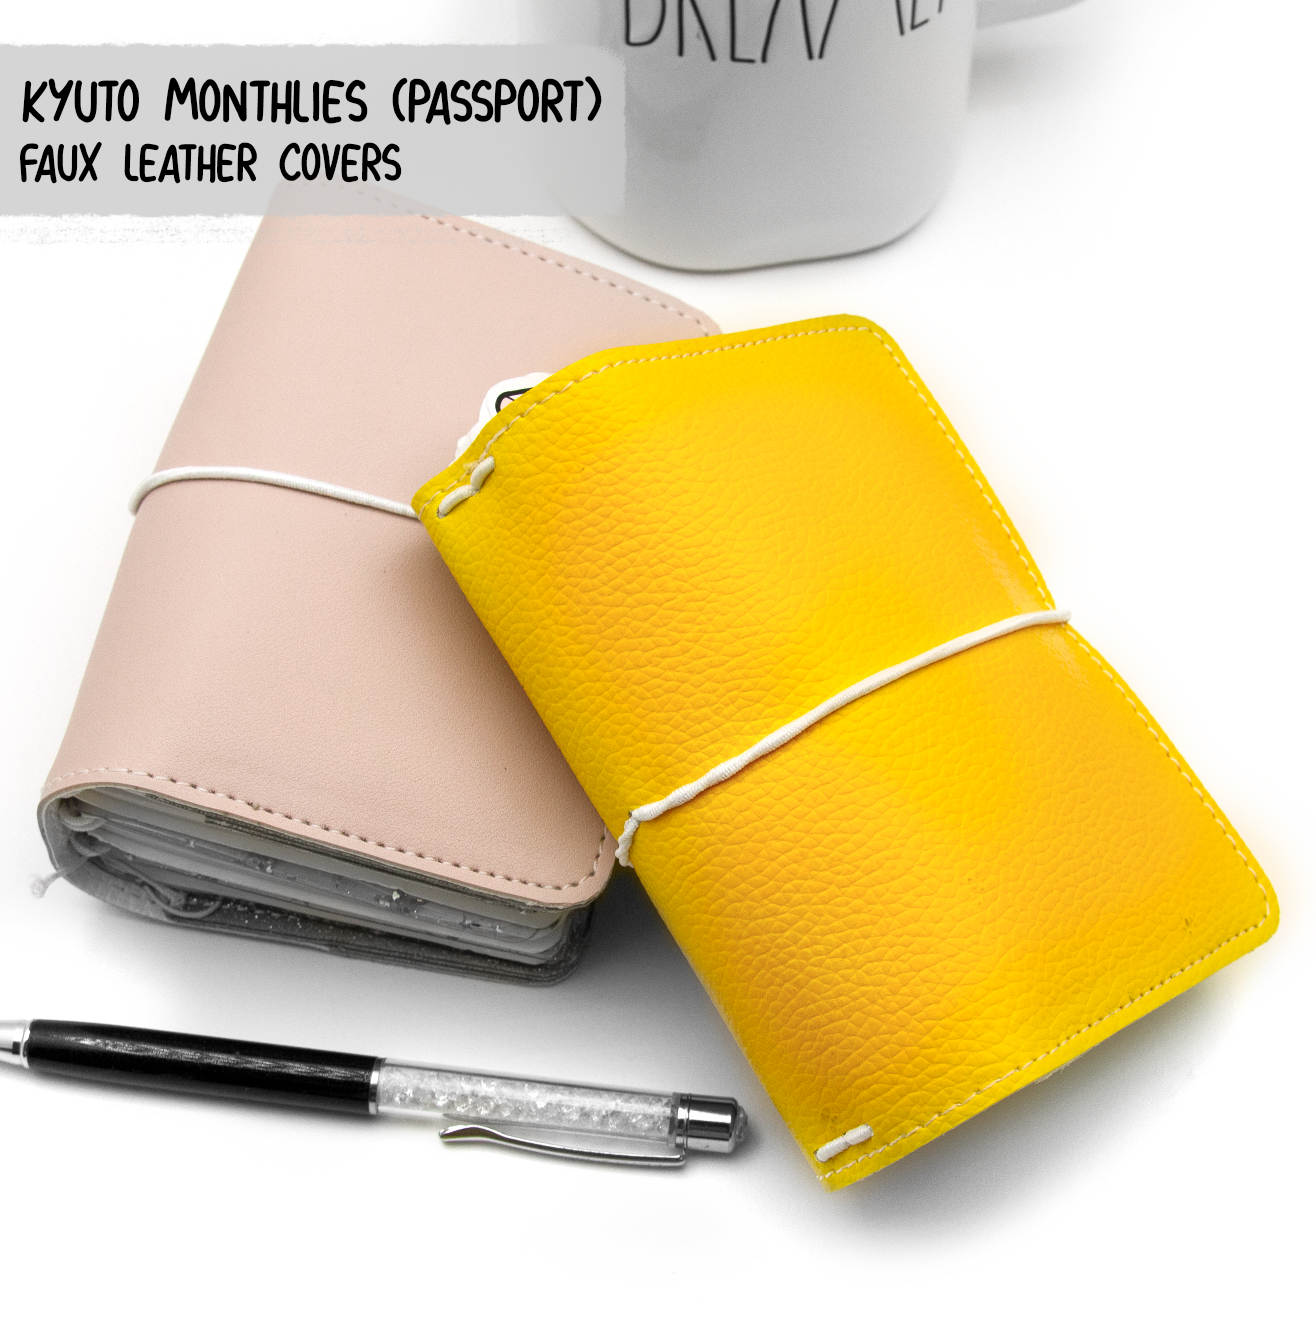 Faux Leather/vegan Cover for Kyu-to Monthlies Insert | Limited Stock!!